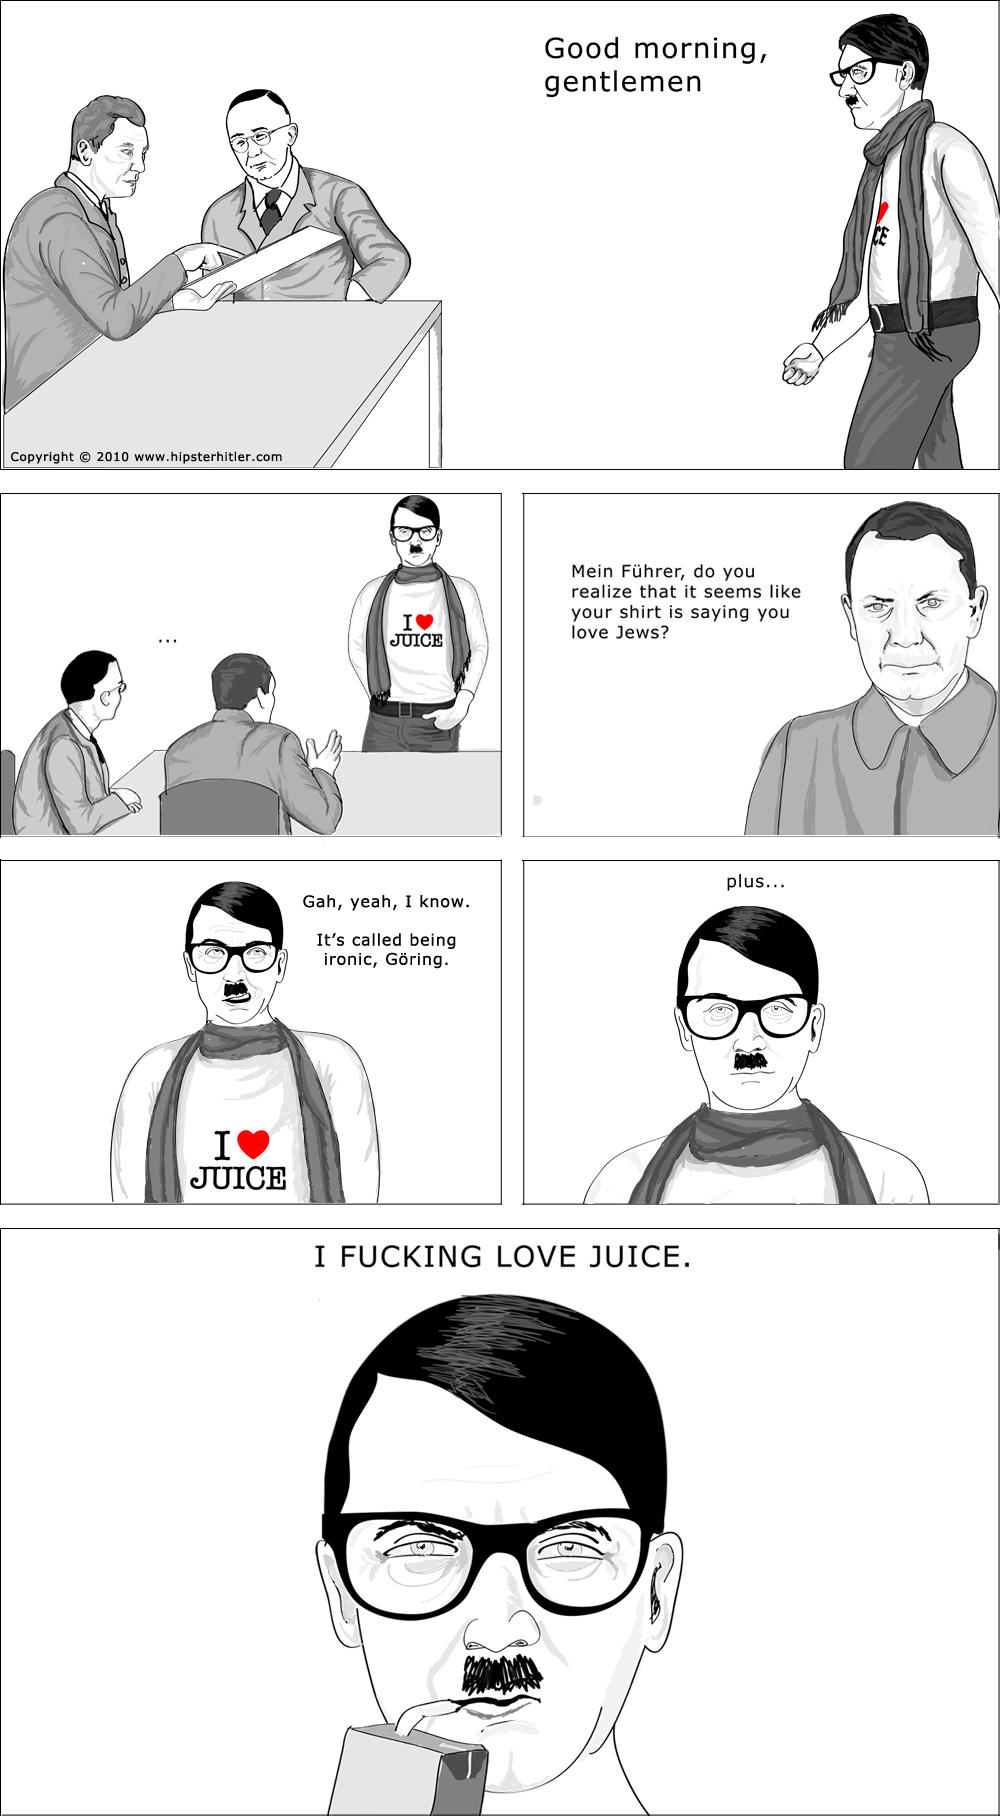 hipster hitler visits the - photo #11